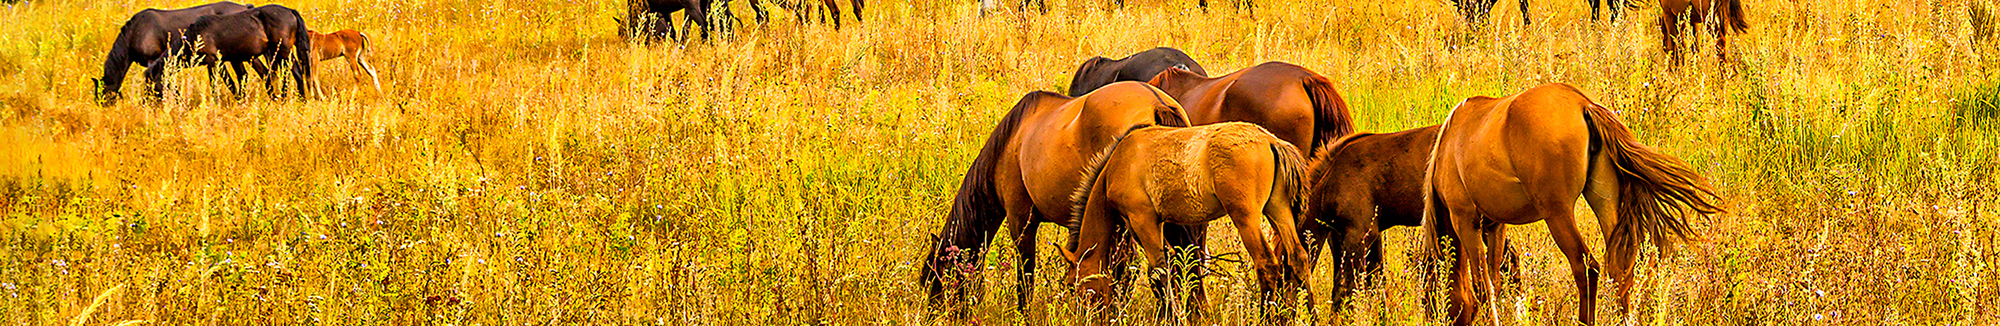 a picture of horses in a field in the autumn